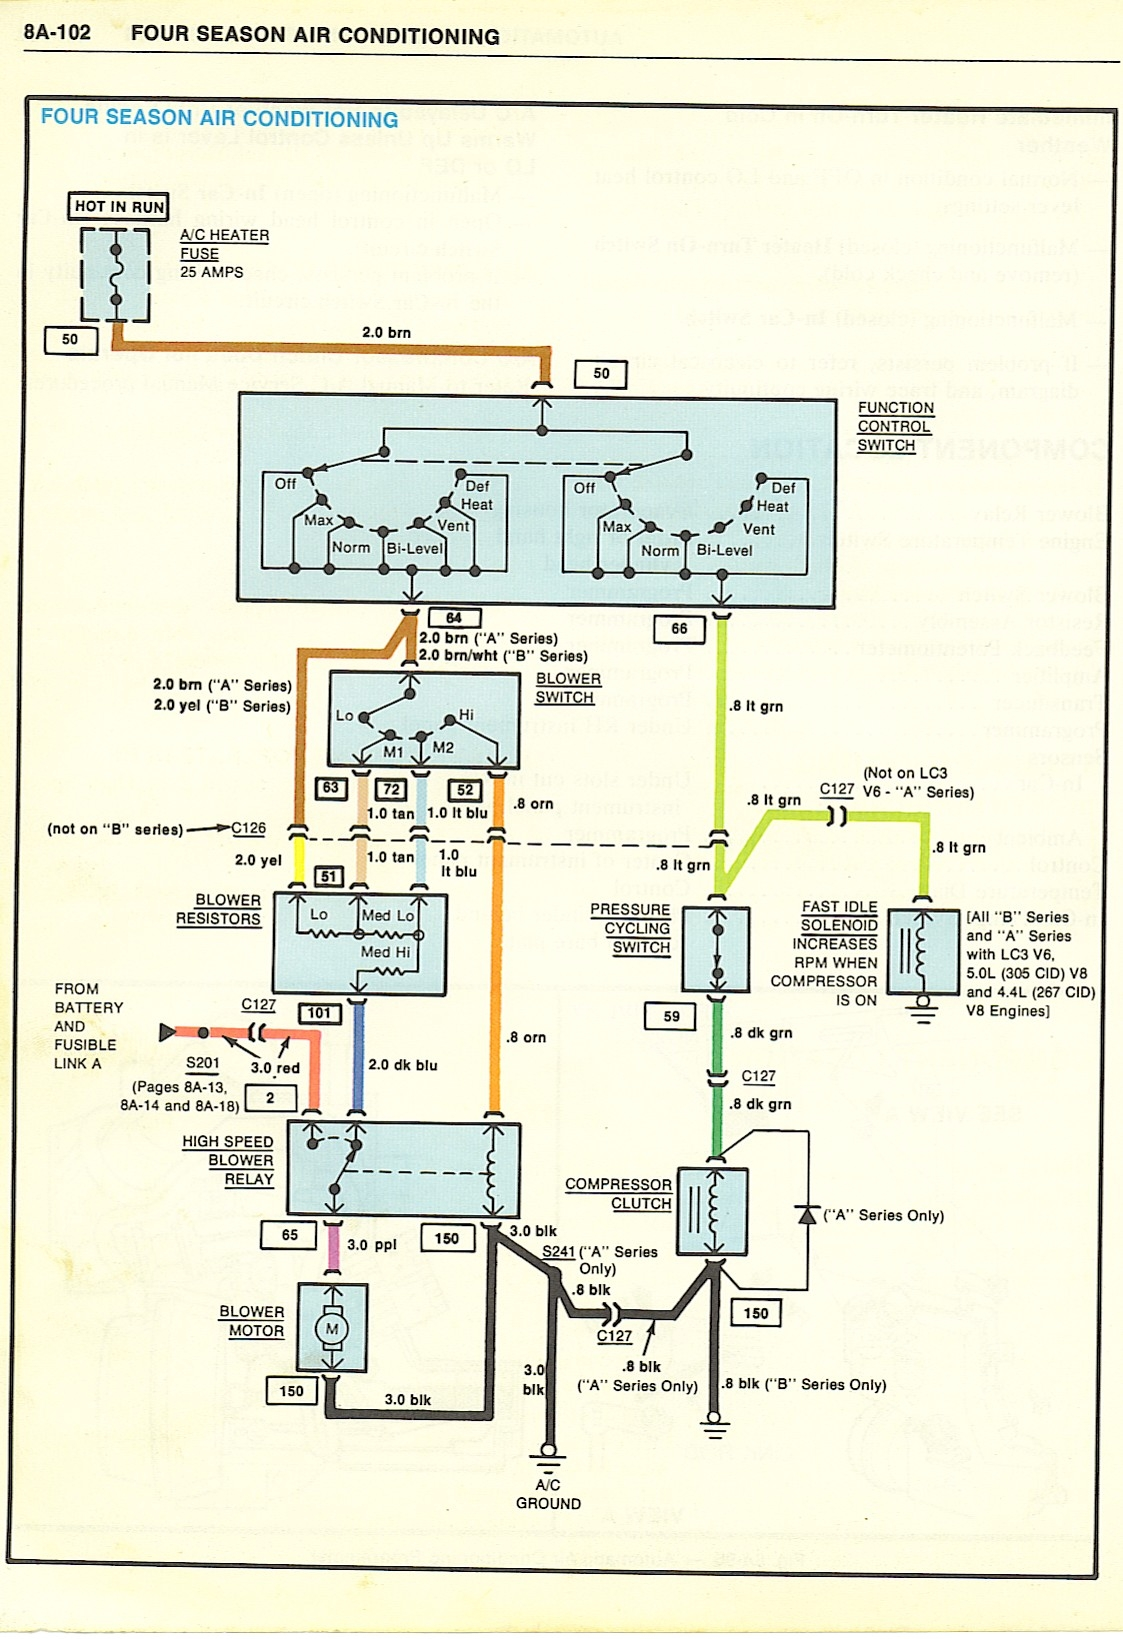 1968 FourSeasonAirConditioner 71 c10 wiring diagram 1970 gmc truck wiring diagram \u2022 free wiring 1967 chevelle wiring diagram pdf at reclaimingppi.co